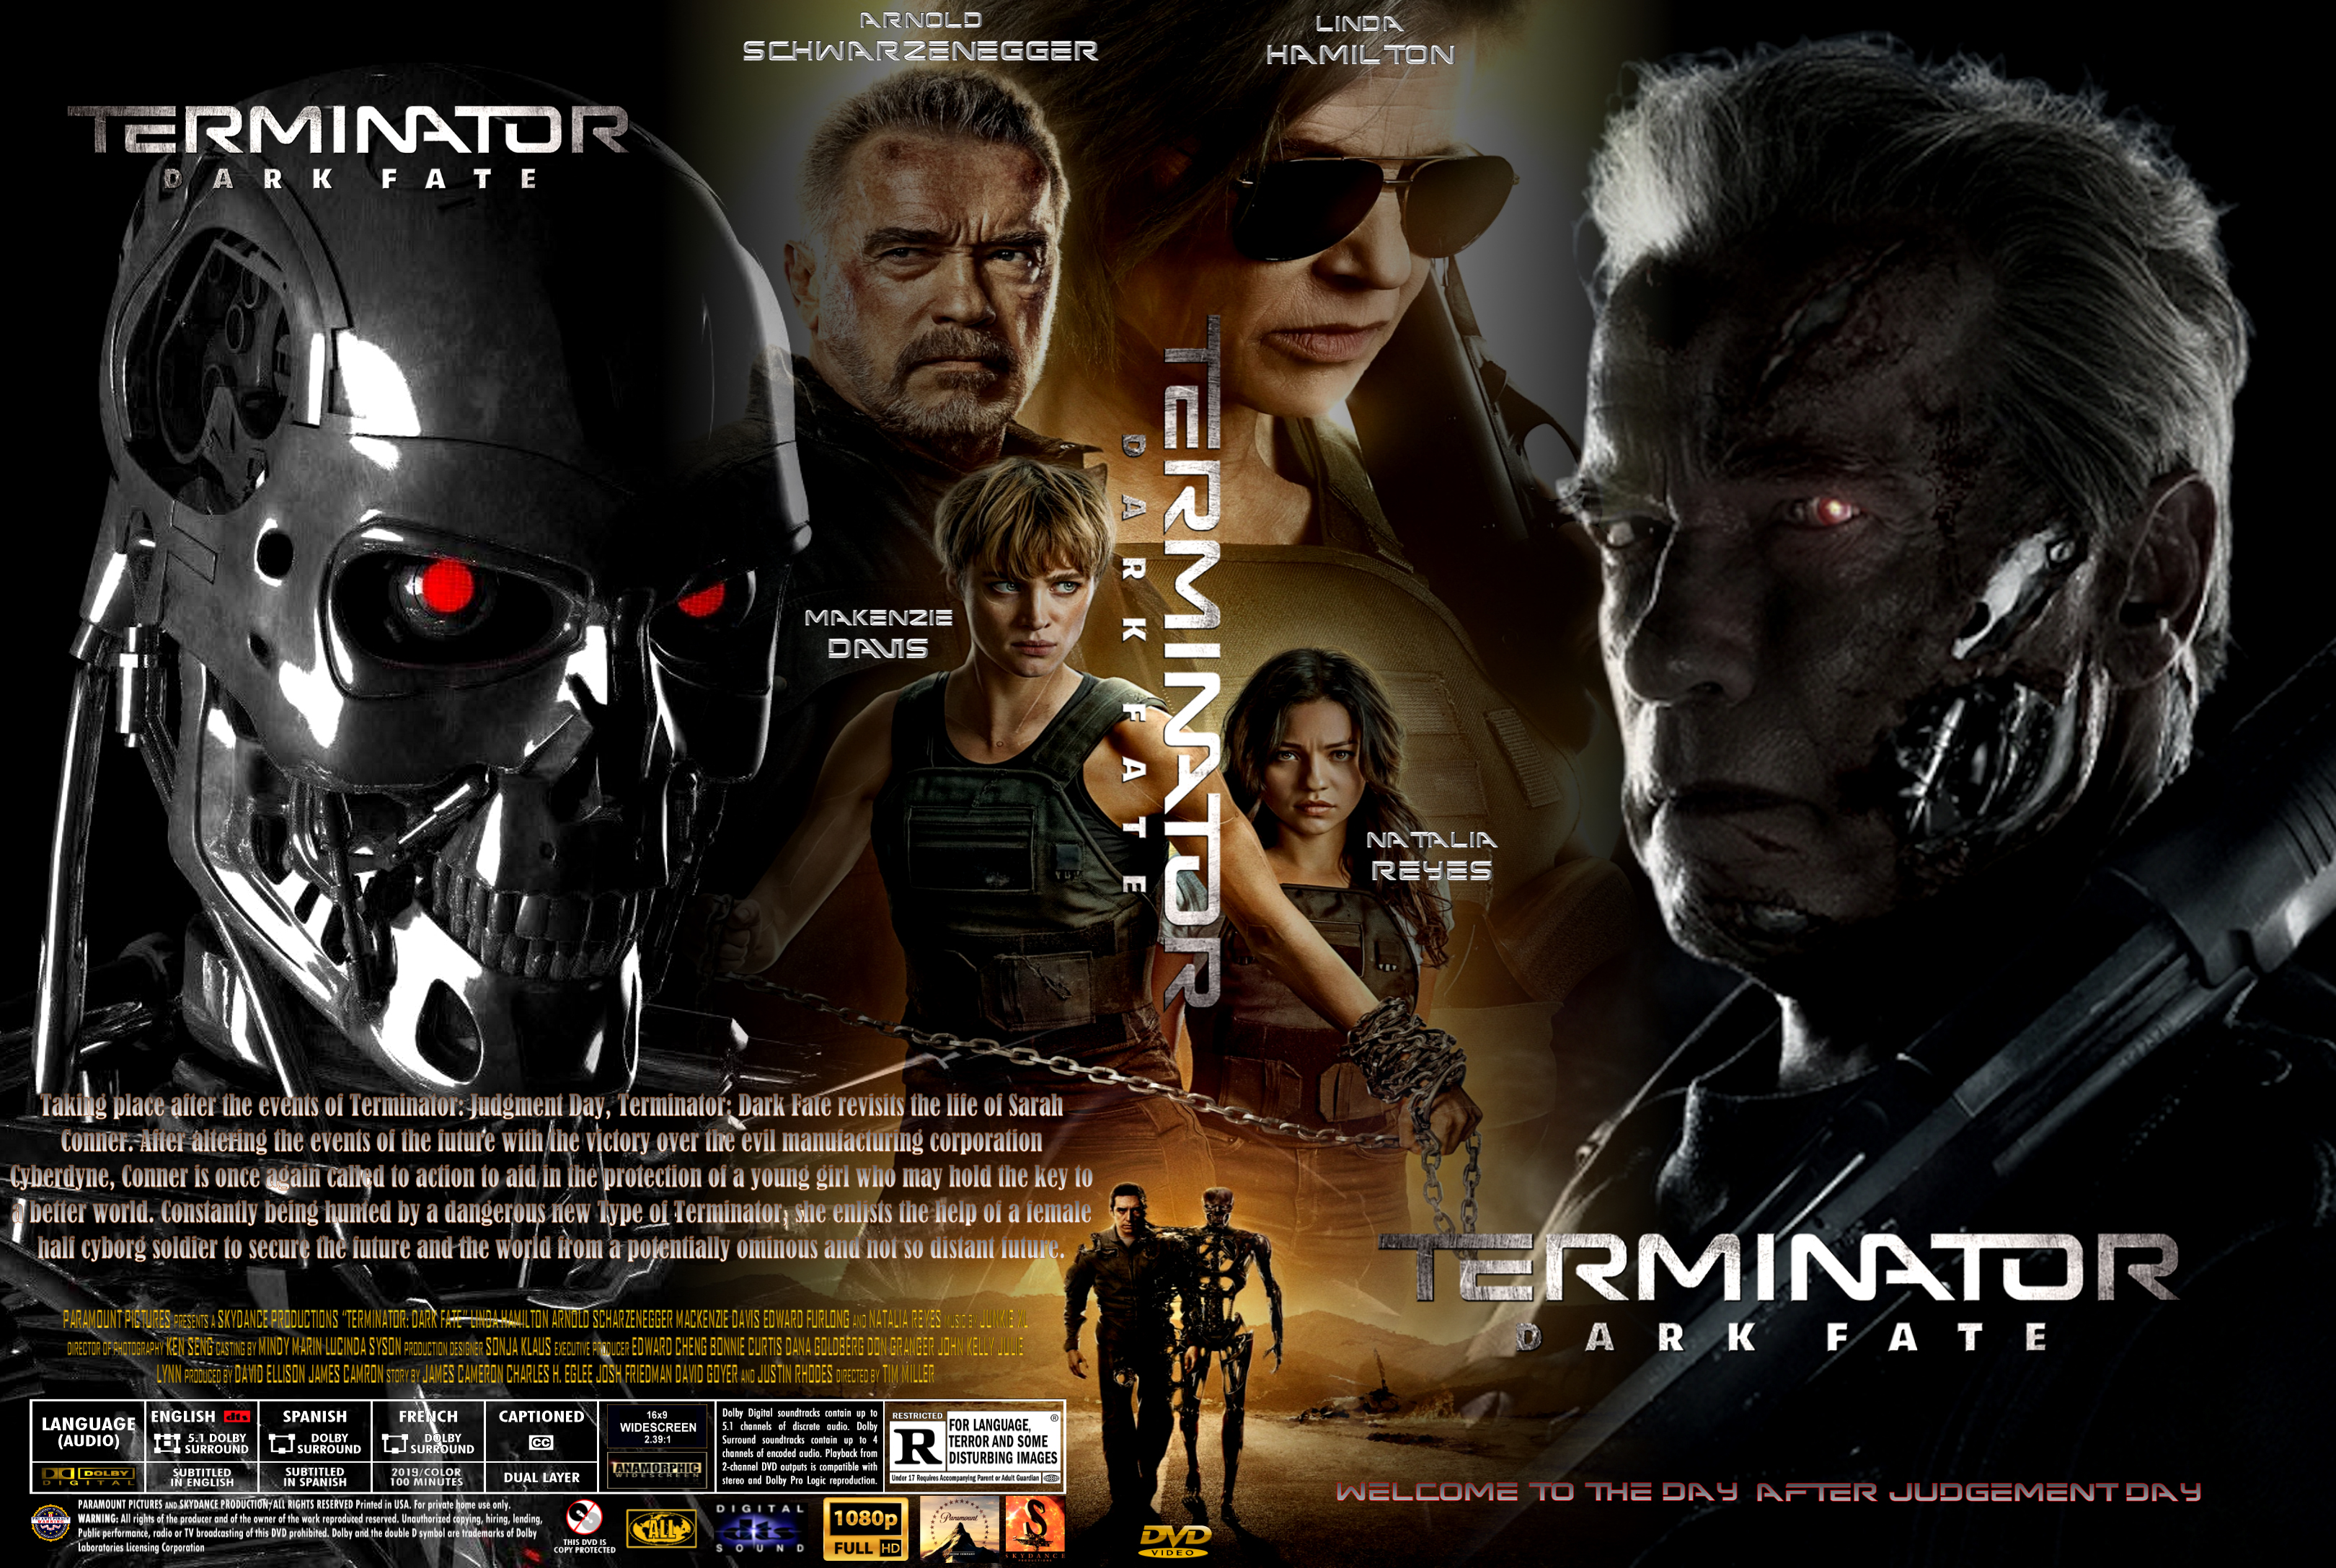 Terminator Dark Fate (2019) : Front | DVD Covers | Cover Century | Over  500.000 Album Art covers for free